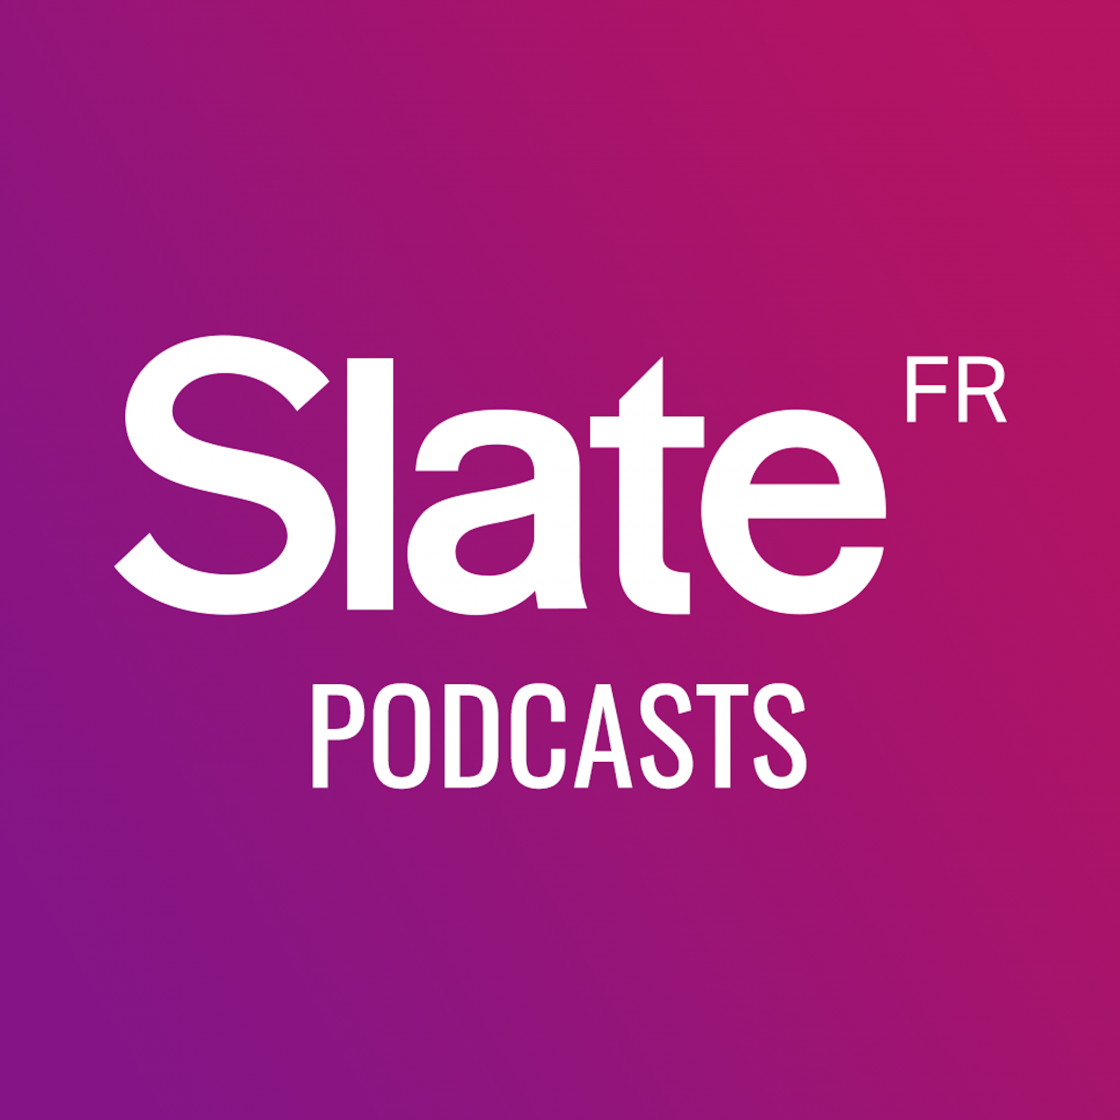 Slate.fr : 1.7 million de podcasts natifs téléchargés en août